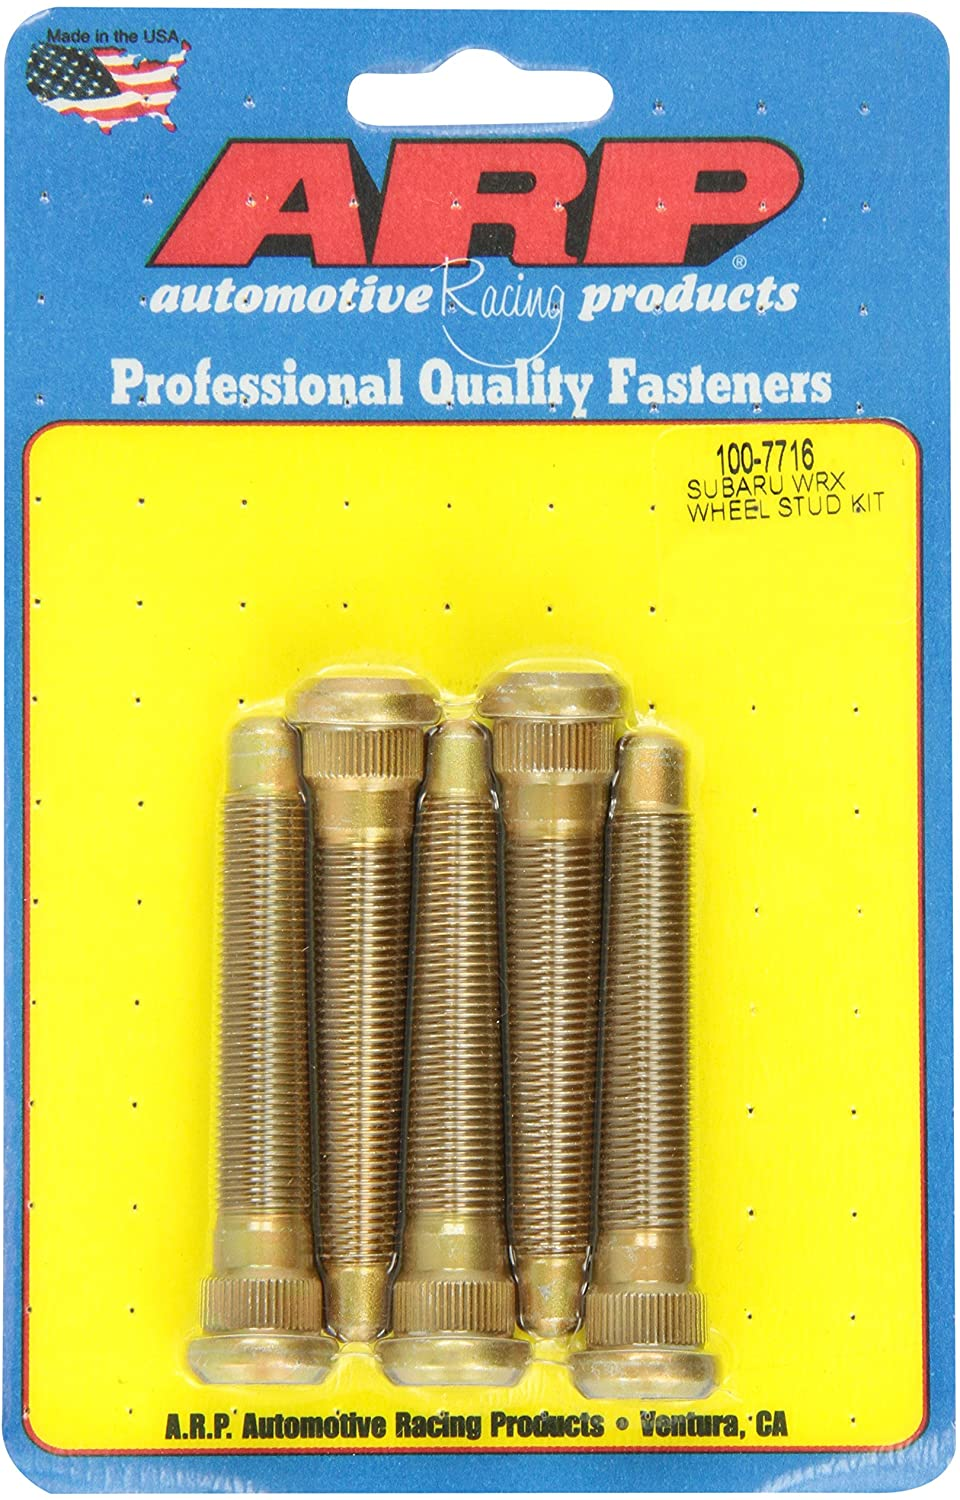 ARP Extended Wheel Studs 5 Pack - Universal